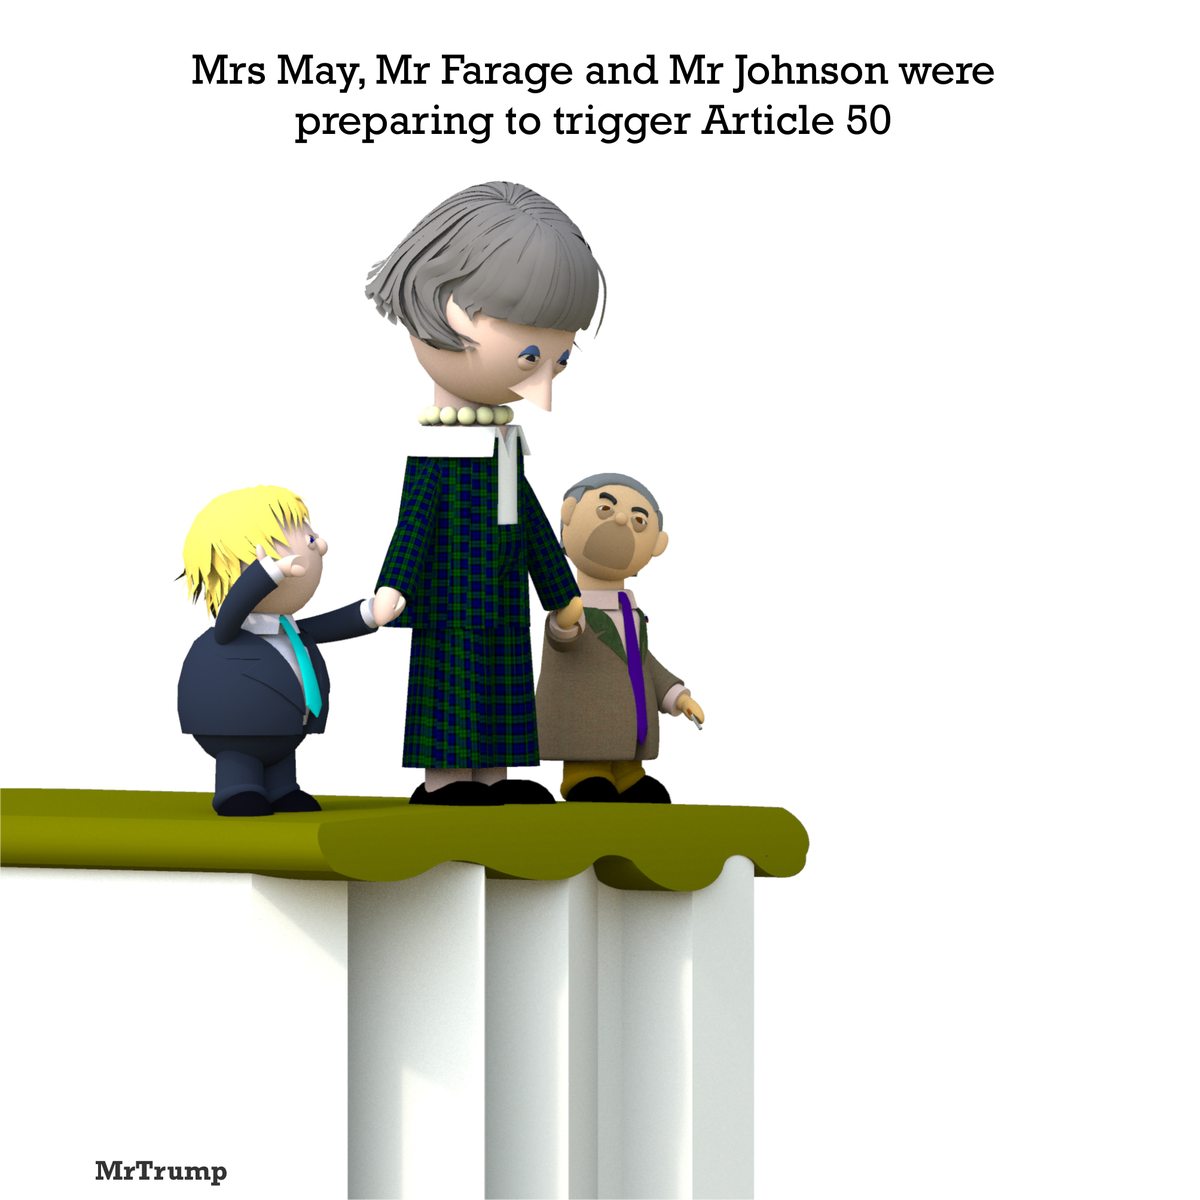 Mrs May, Mr Farage and Mr Johnson were preparing to trigger Article 50  #BrexitDay #Article50